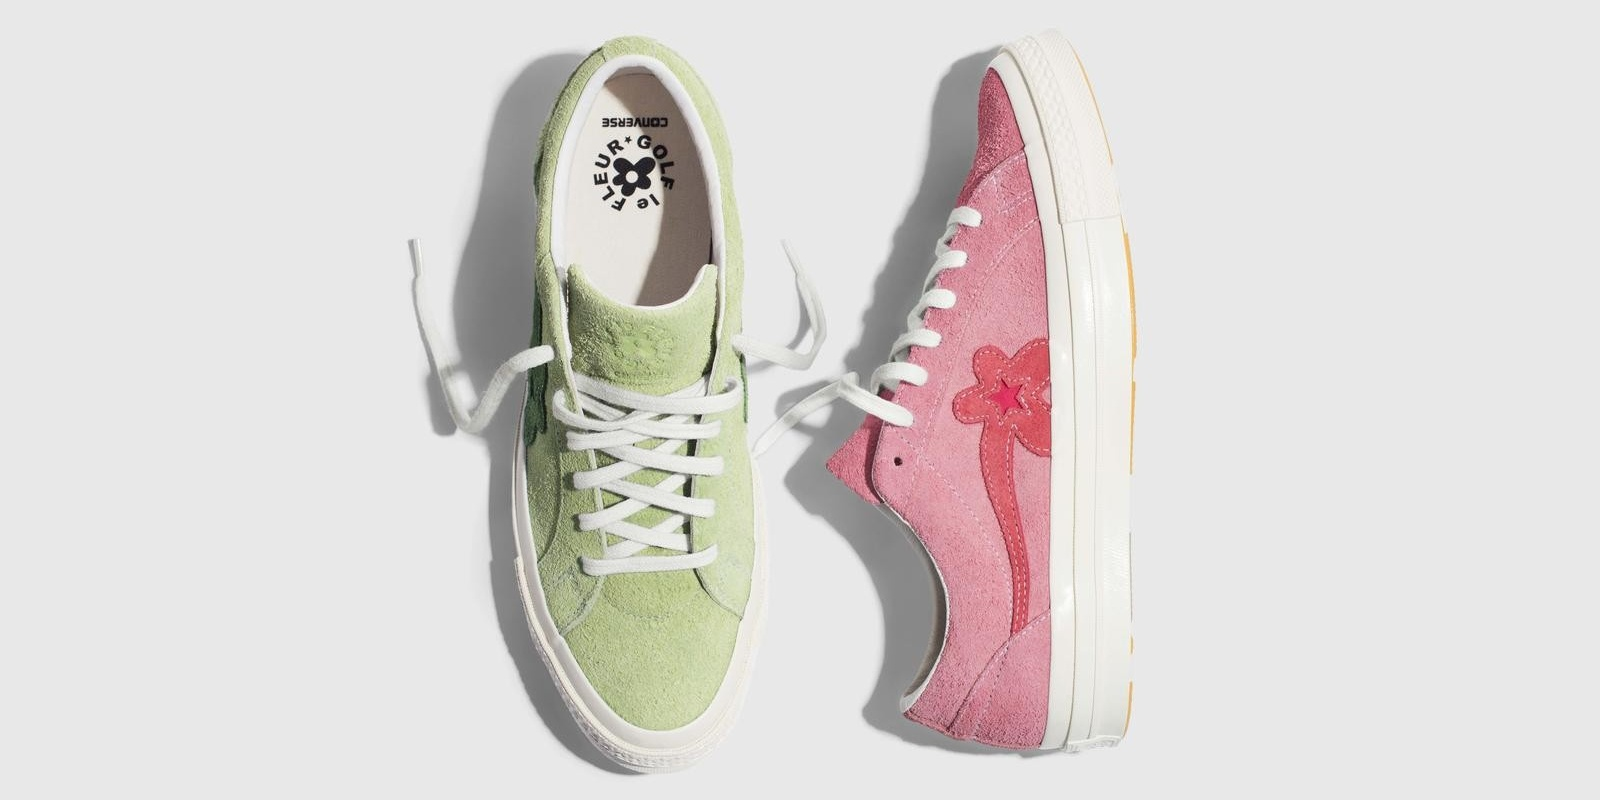 Tyler, The Creator's Converse line arrives in Singapore